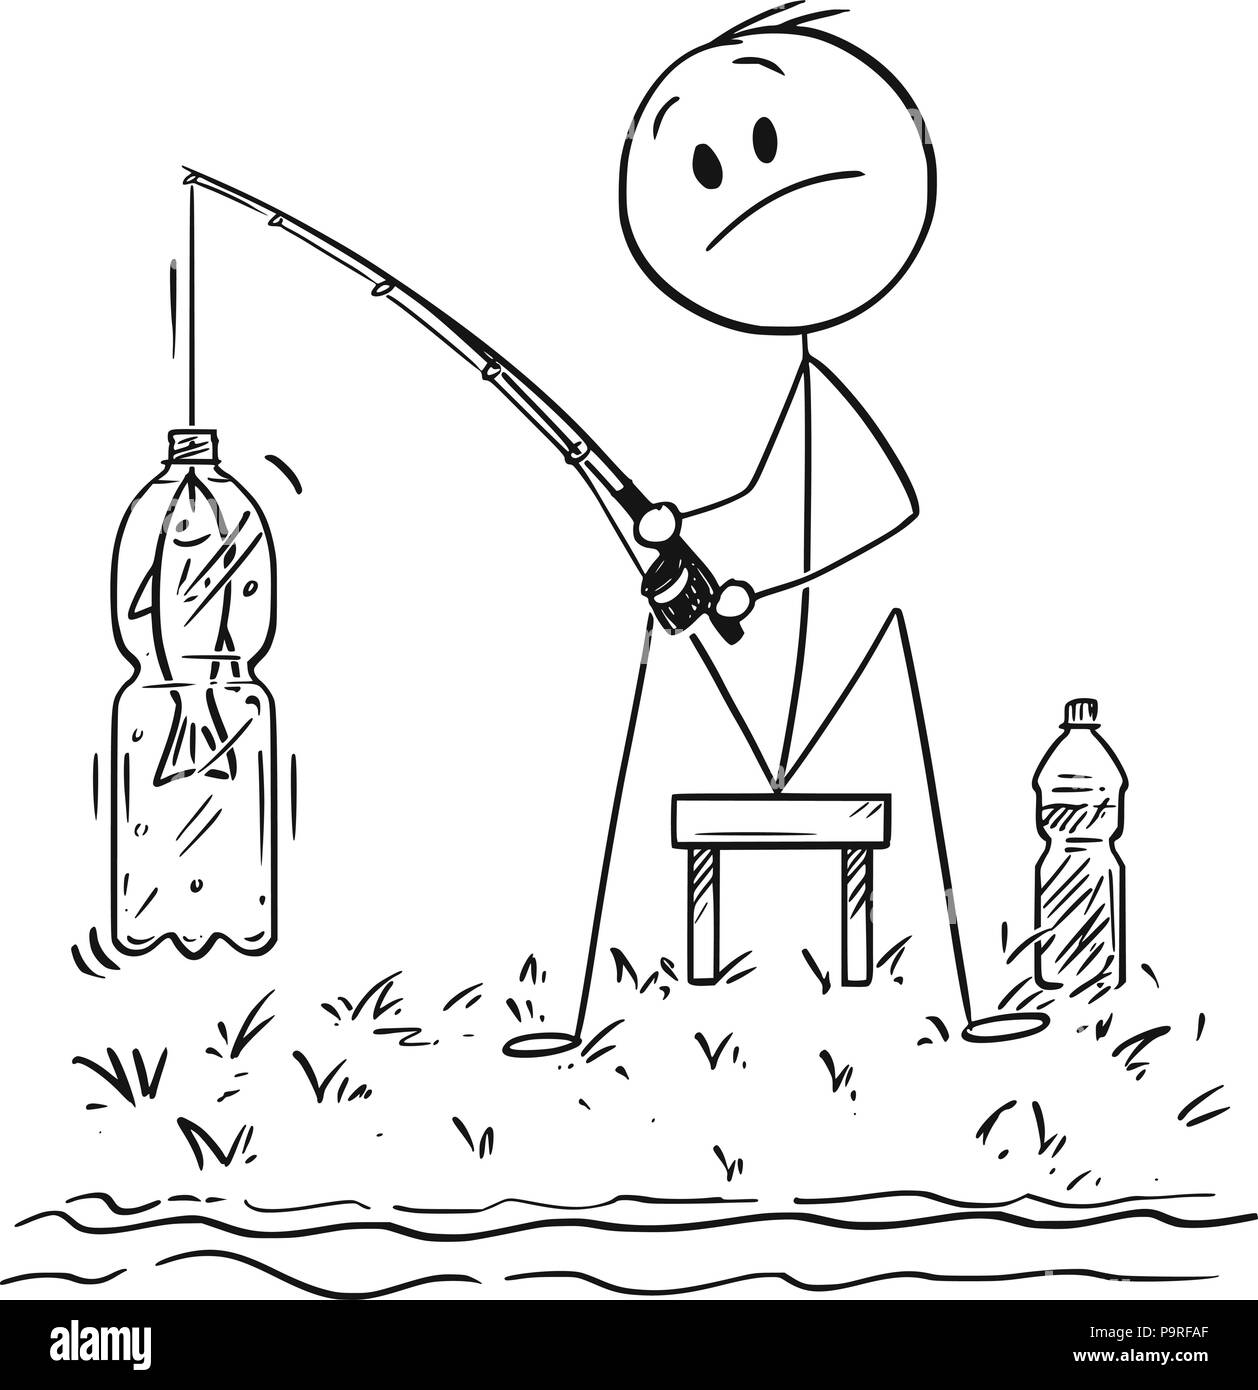 Cartoon Of Man Or Fisherman Fishing On The River Or Lake Shore